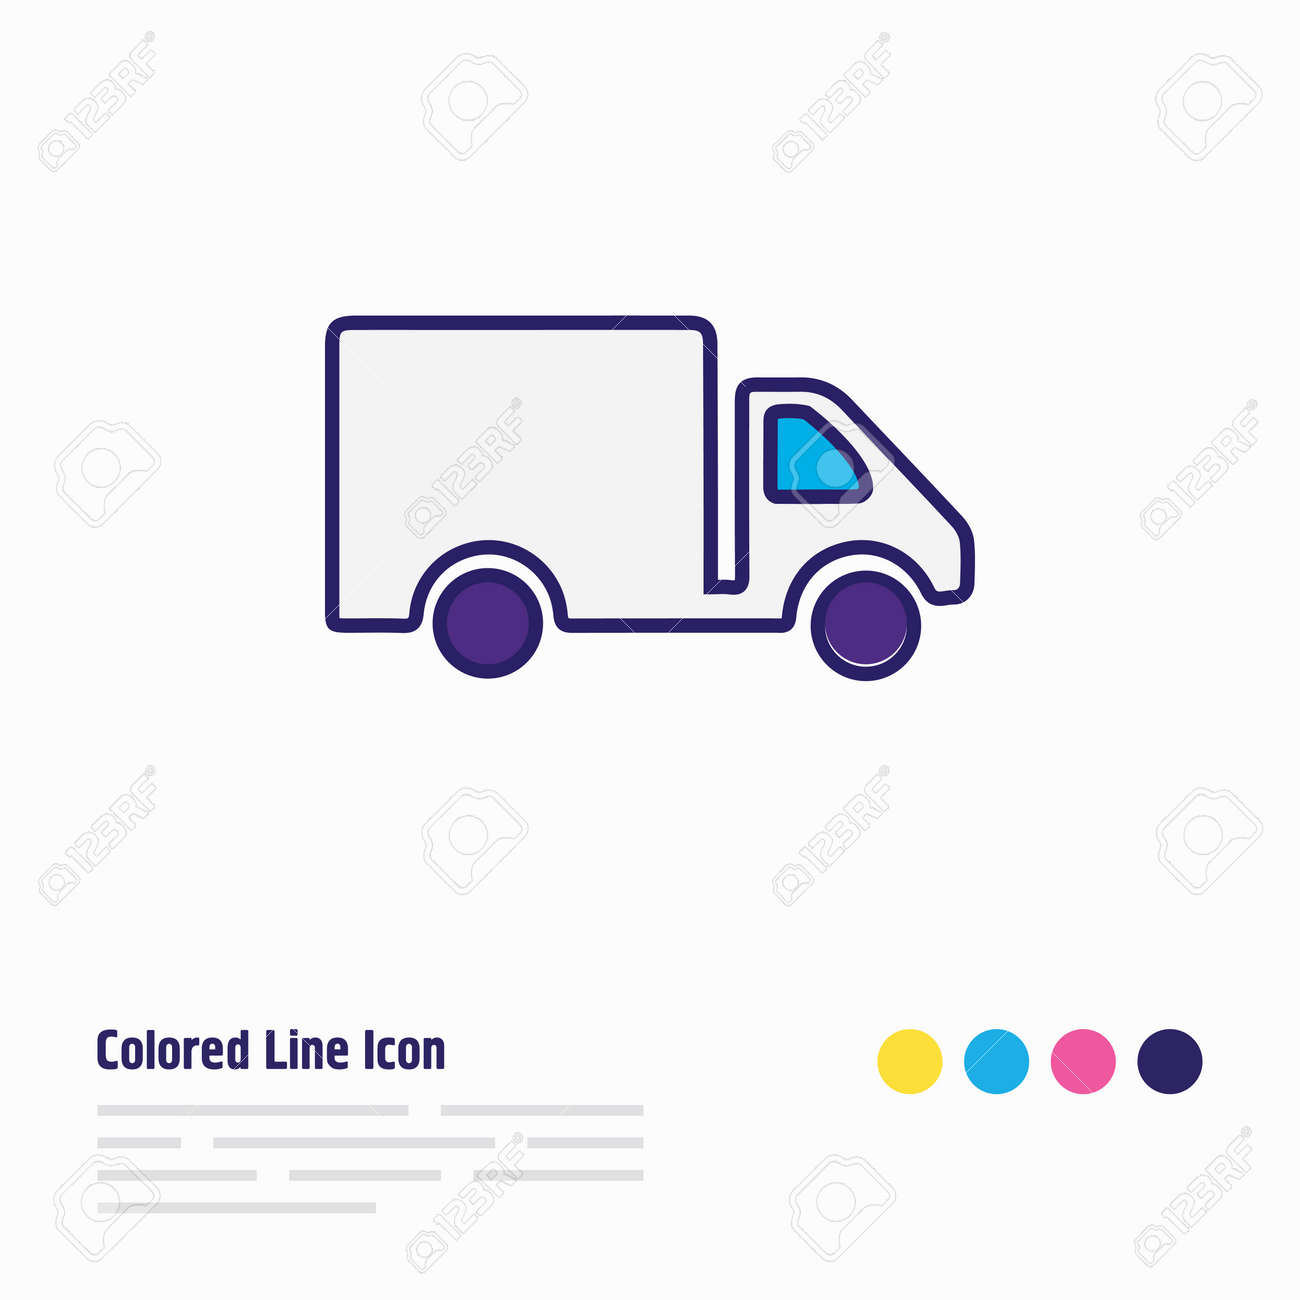 Vector illustration of truck icon colored line. Beautiful transport element also can be used as van icon element. - 158380322